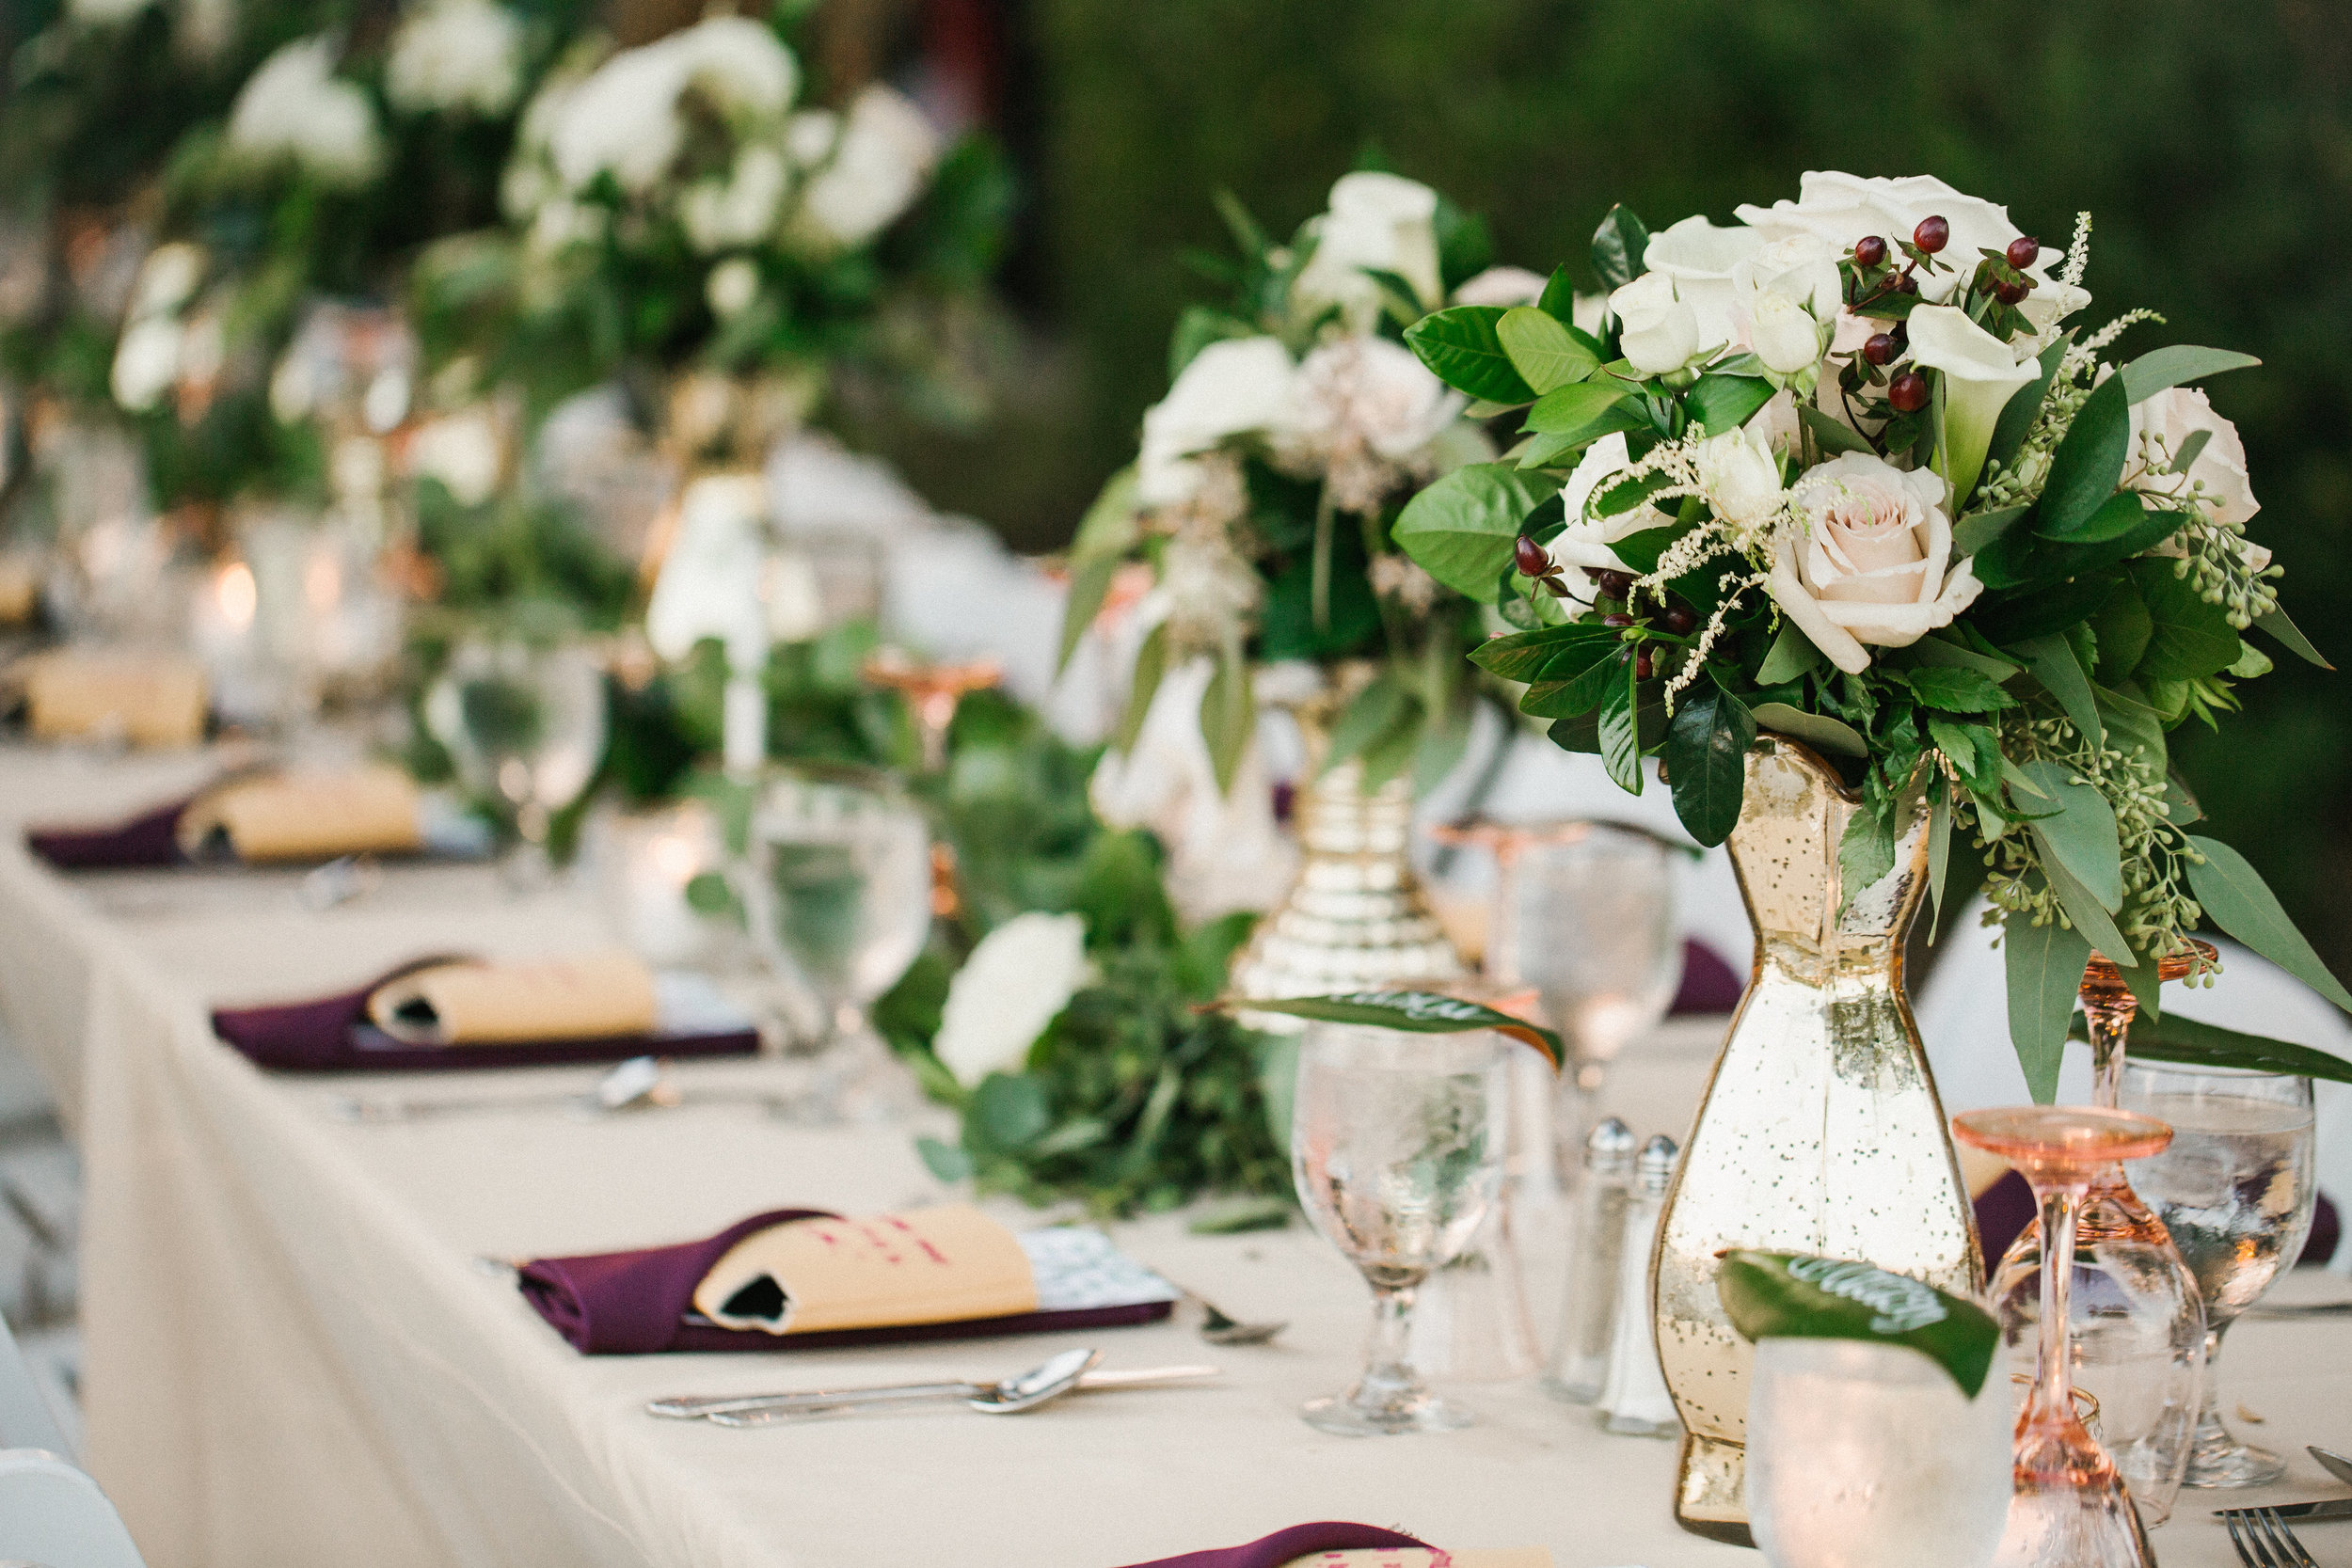 The wedding party sat at a long feasting table which was dripped in greenery and soft gold mercury glass, with those pops of marsala throughout.